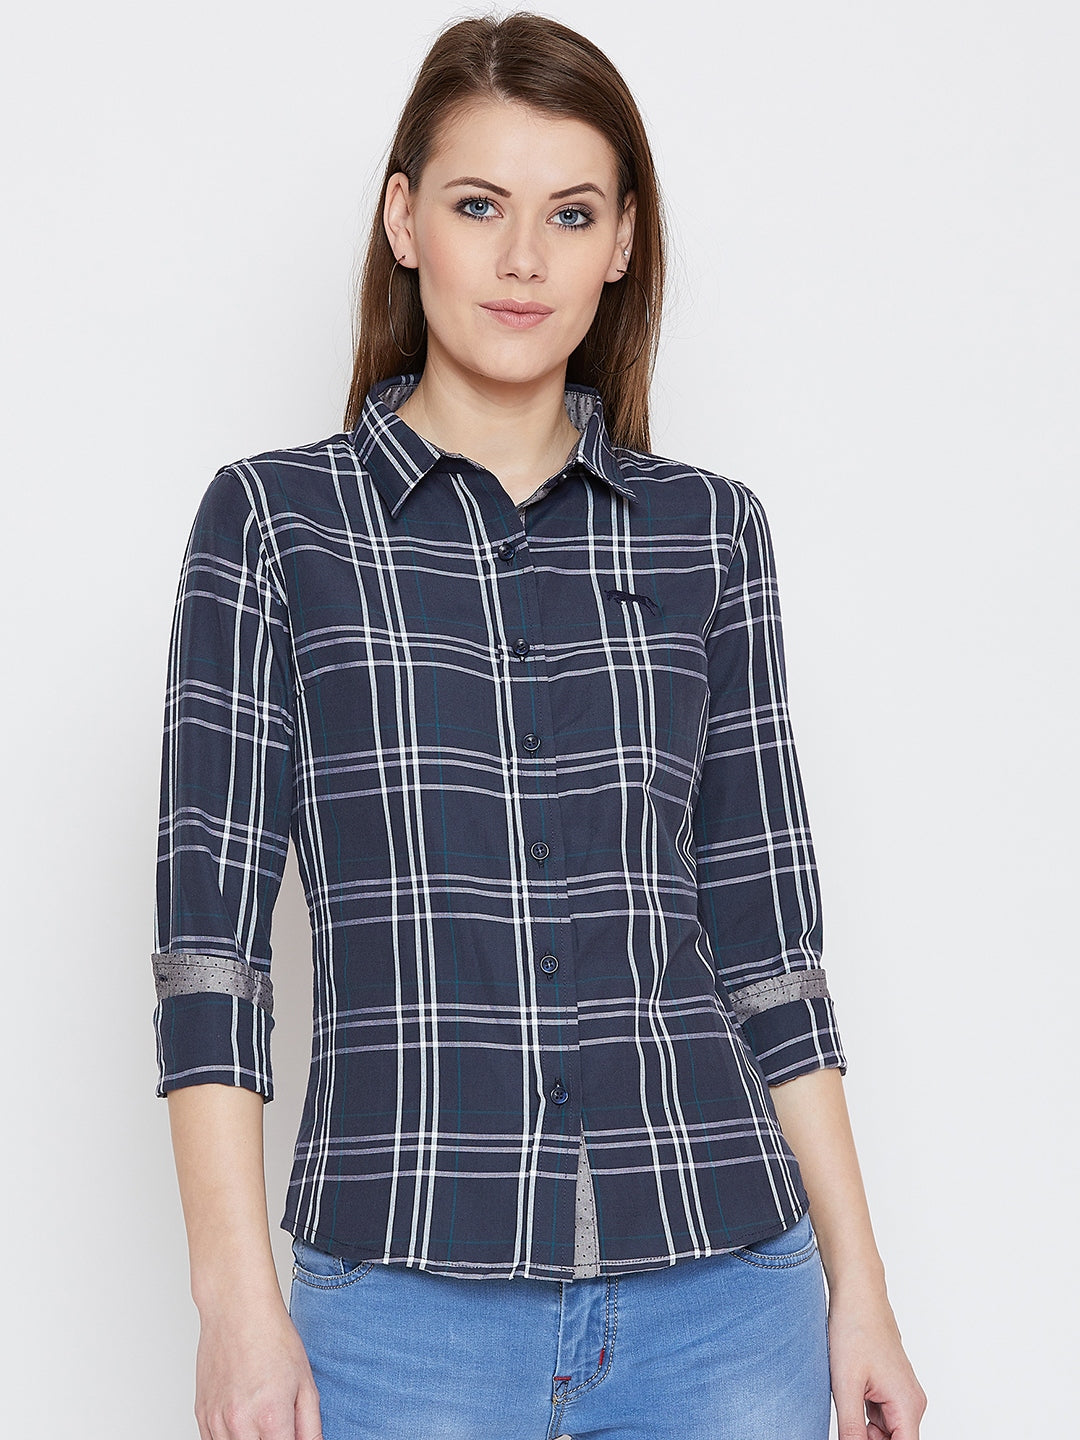 JUMP USA Women Navy Blue Checked Casual Shirt